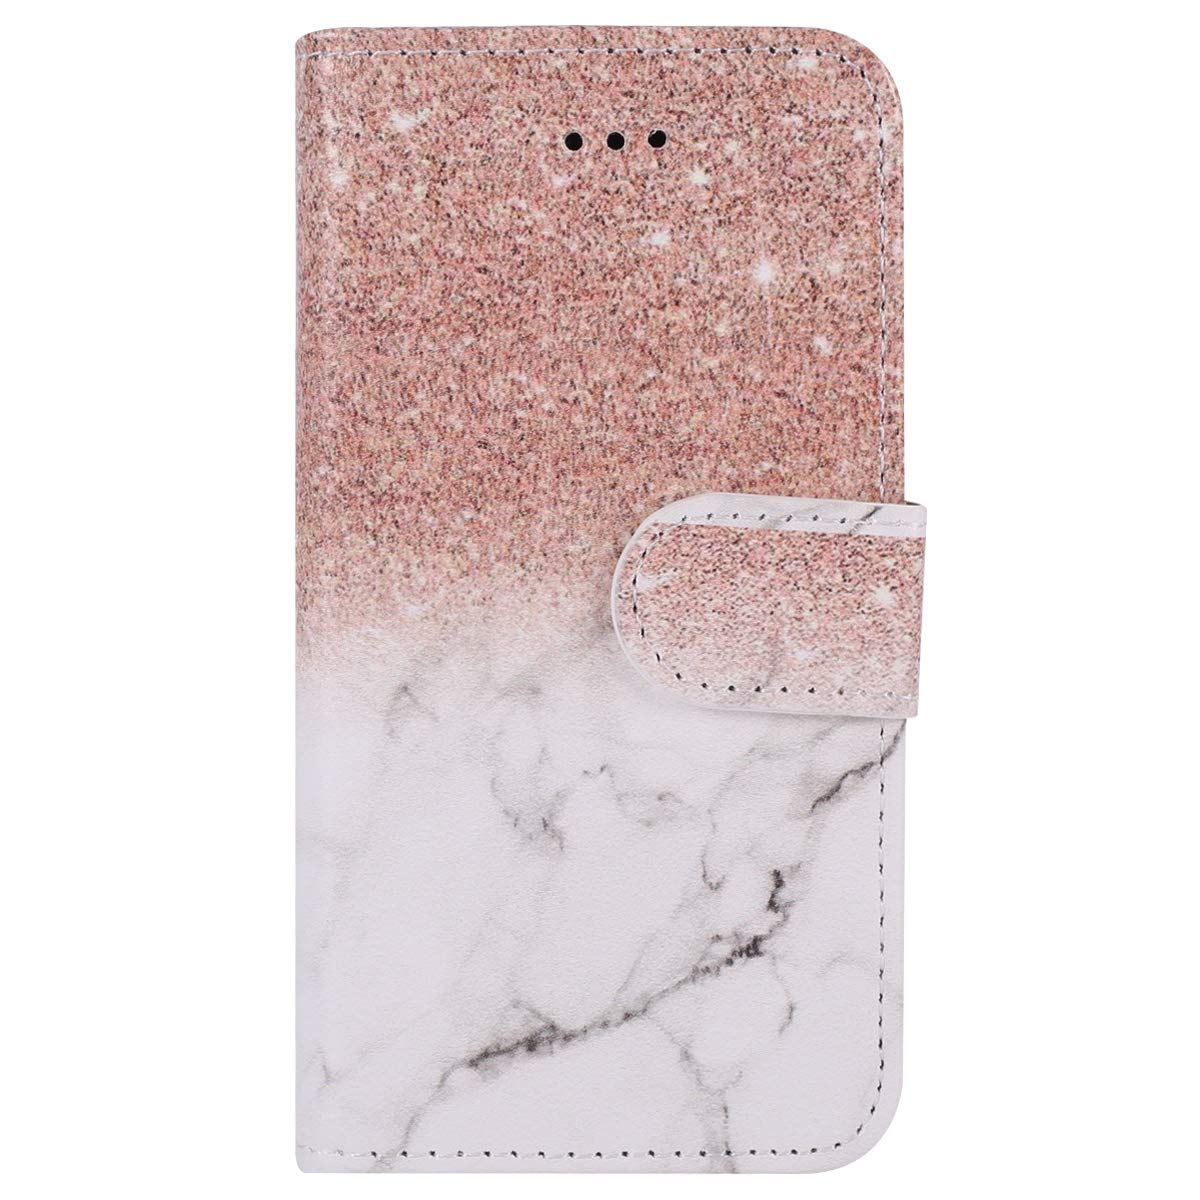 Surakey Galaxy S9 Case, Galaxy S9 Case, Galaxy S9 Case Wallet Case PU Leather Flip Case Cover Rubber Back Holder Magnetic Clip & Card Holders Stand Case for Samsung Galaxy S9, Rose gold white SUR005525